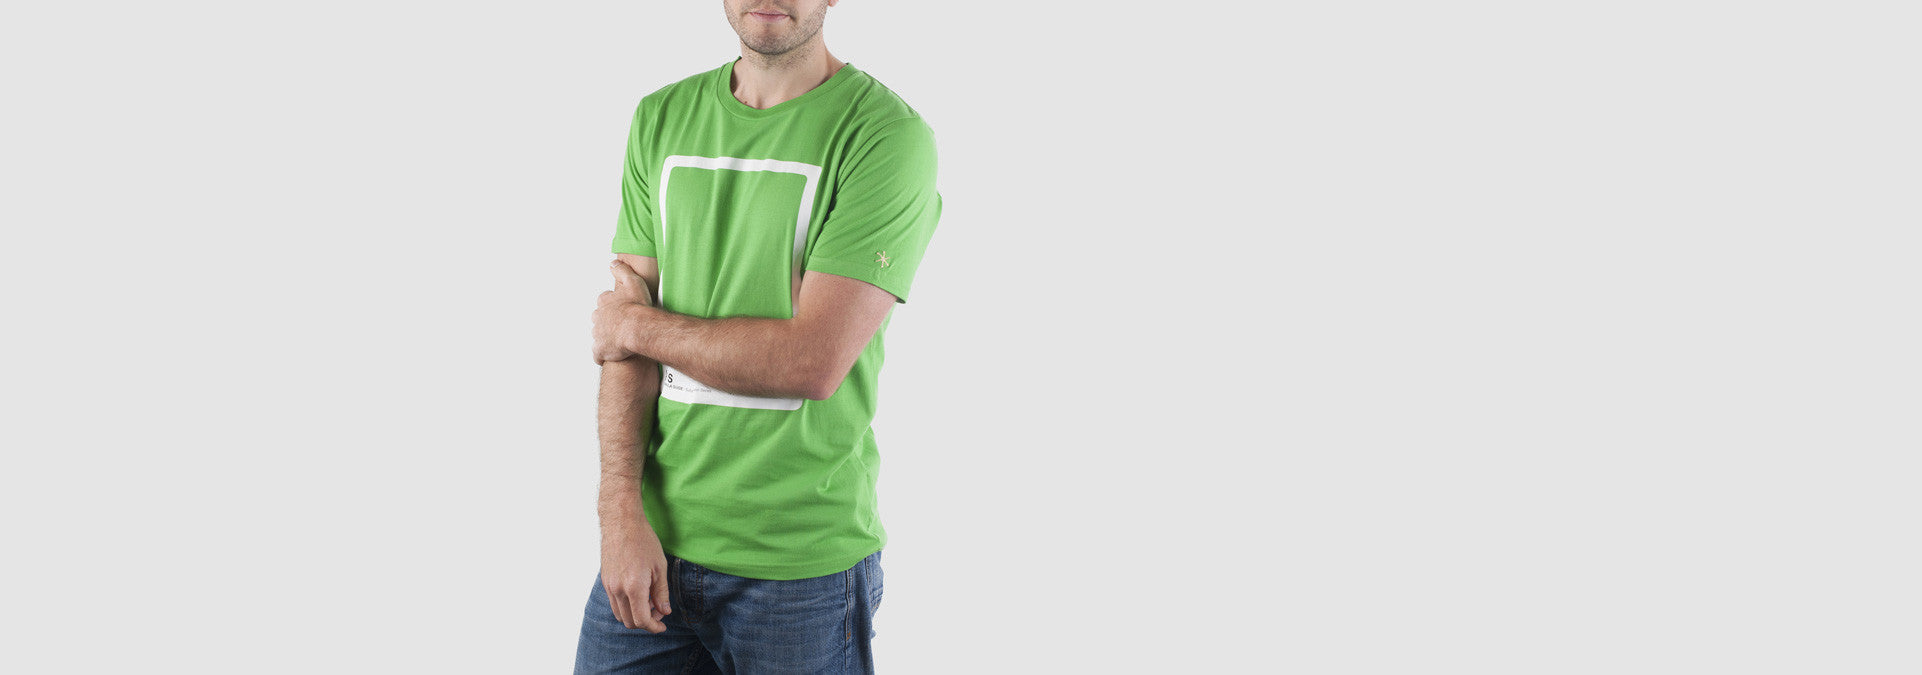 CMYK Swatch T-Shirt Light Green